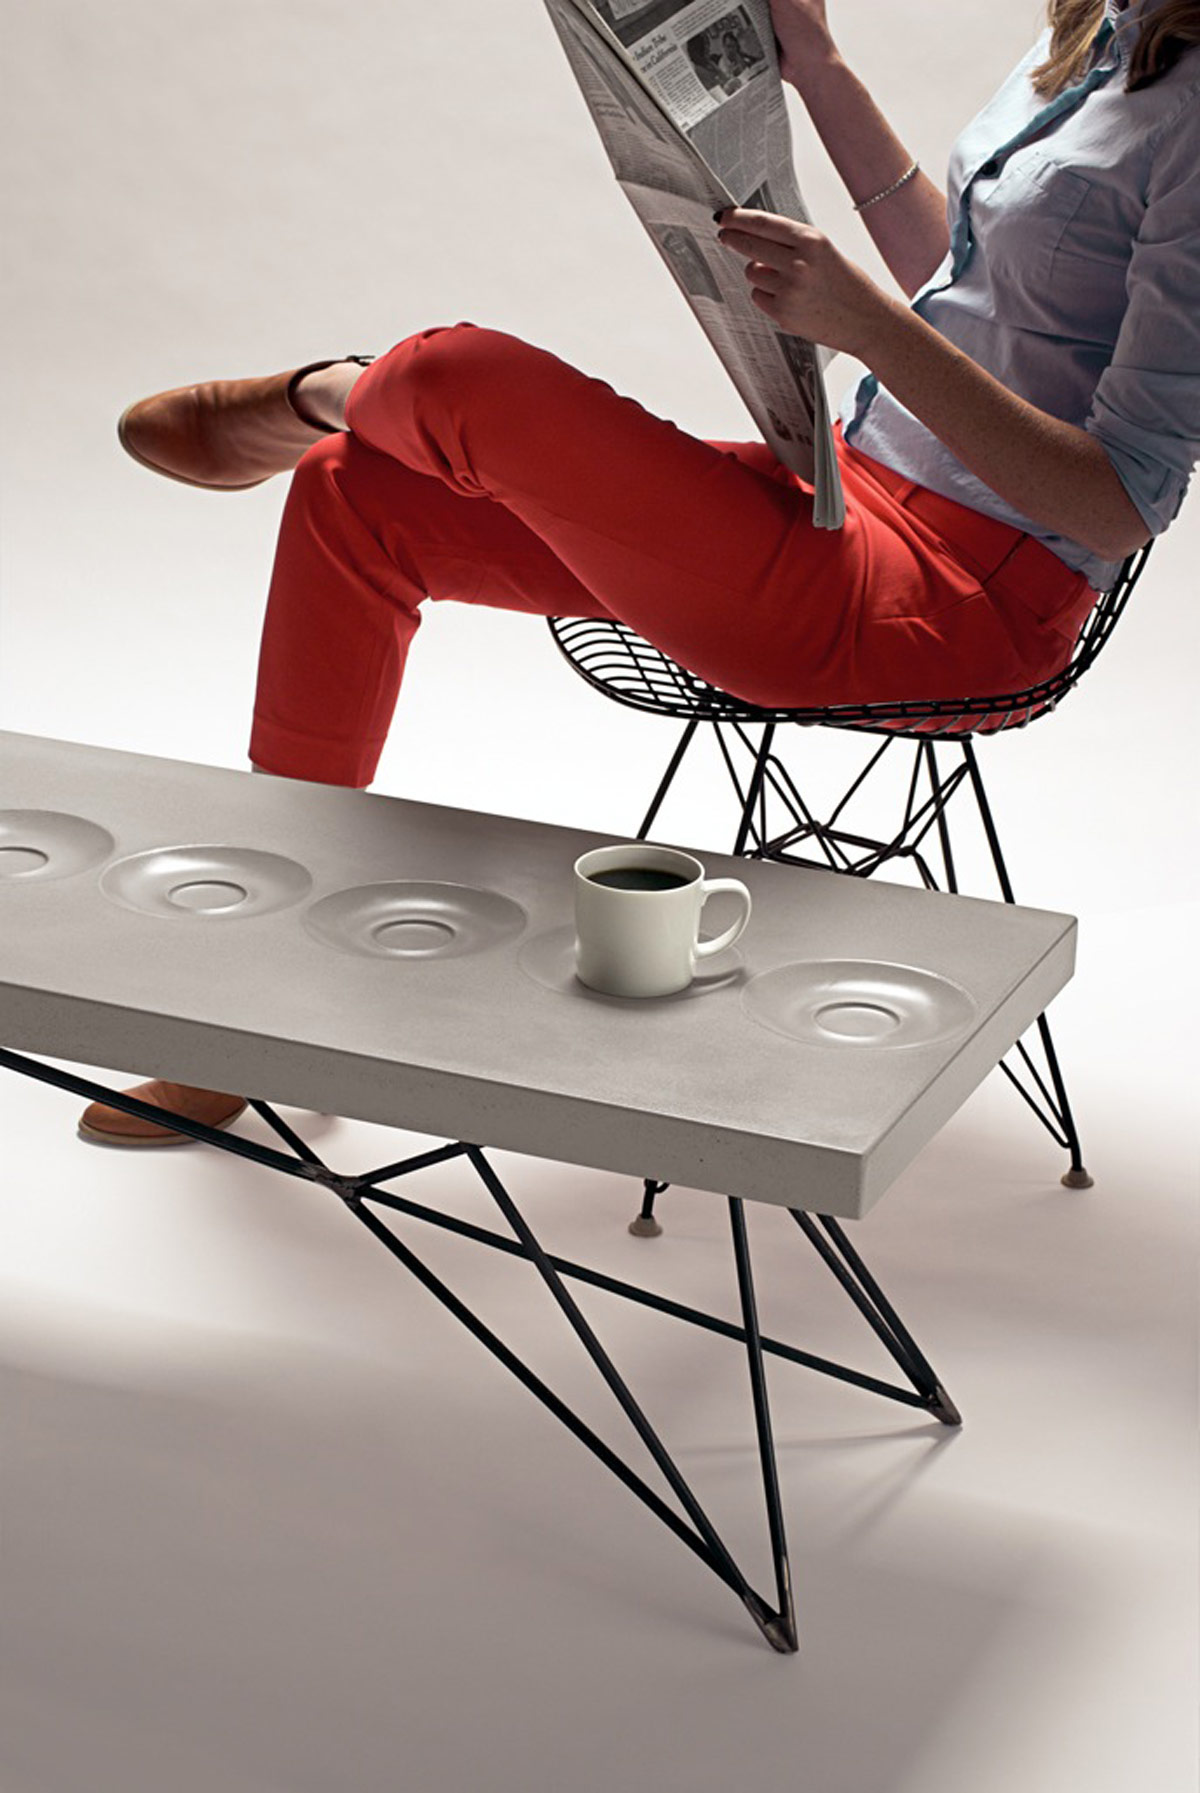 The ORSON Concrete Coffee table has built in saucers for your coffee mug